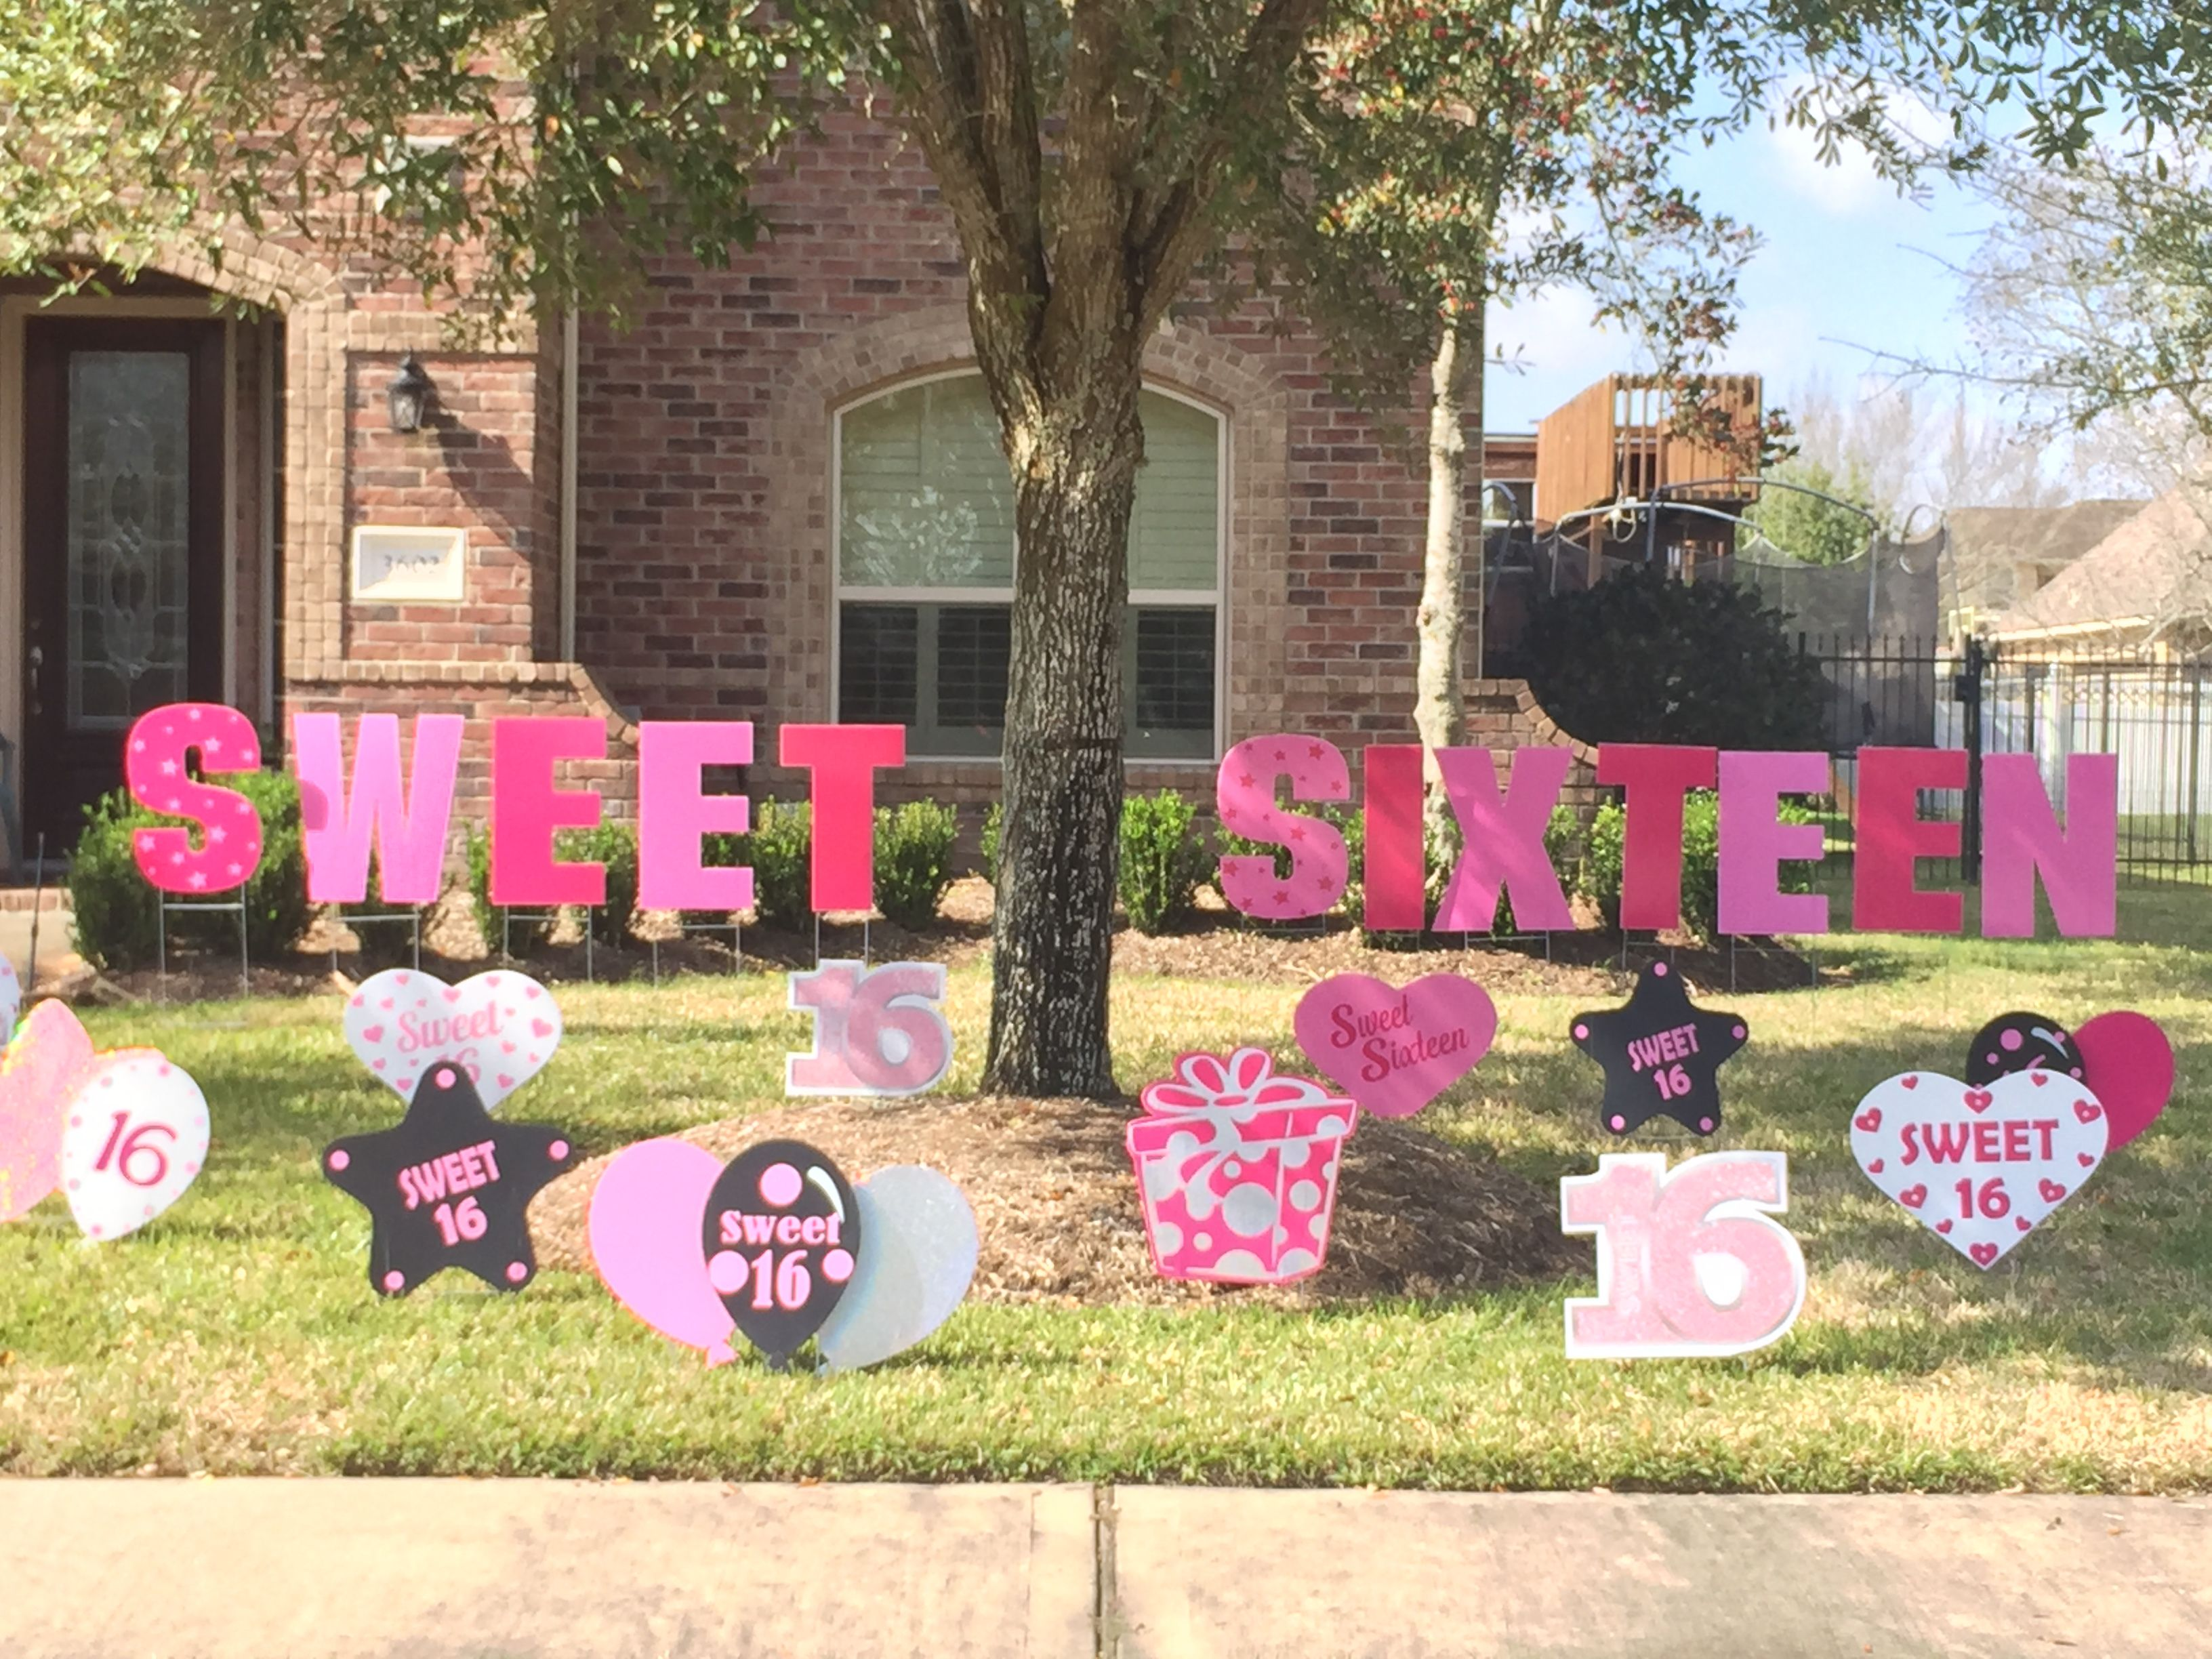 Introducing Our Beautiful New Sweet Sixteen Lawn Letters Along With Our Awesome Bling Sweet 16 Sweet 16 Sign Diy Birthday Decorations Birthday Yard Signs